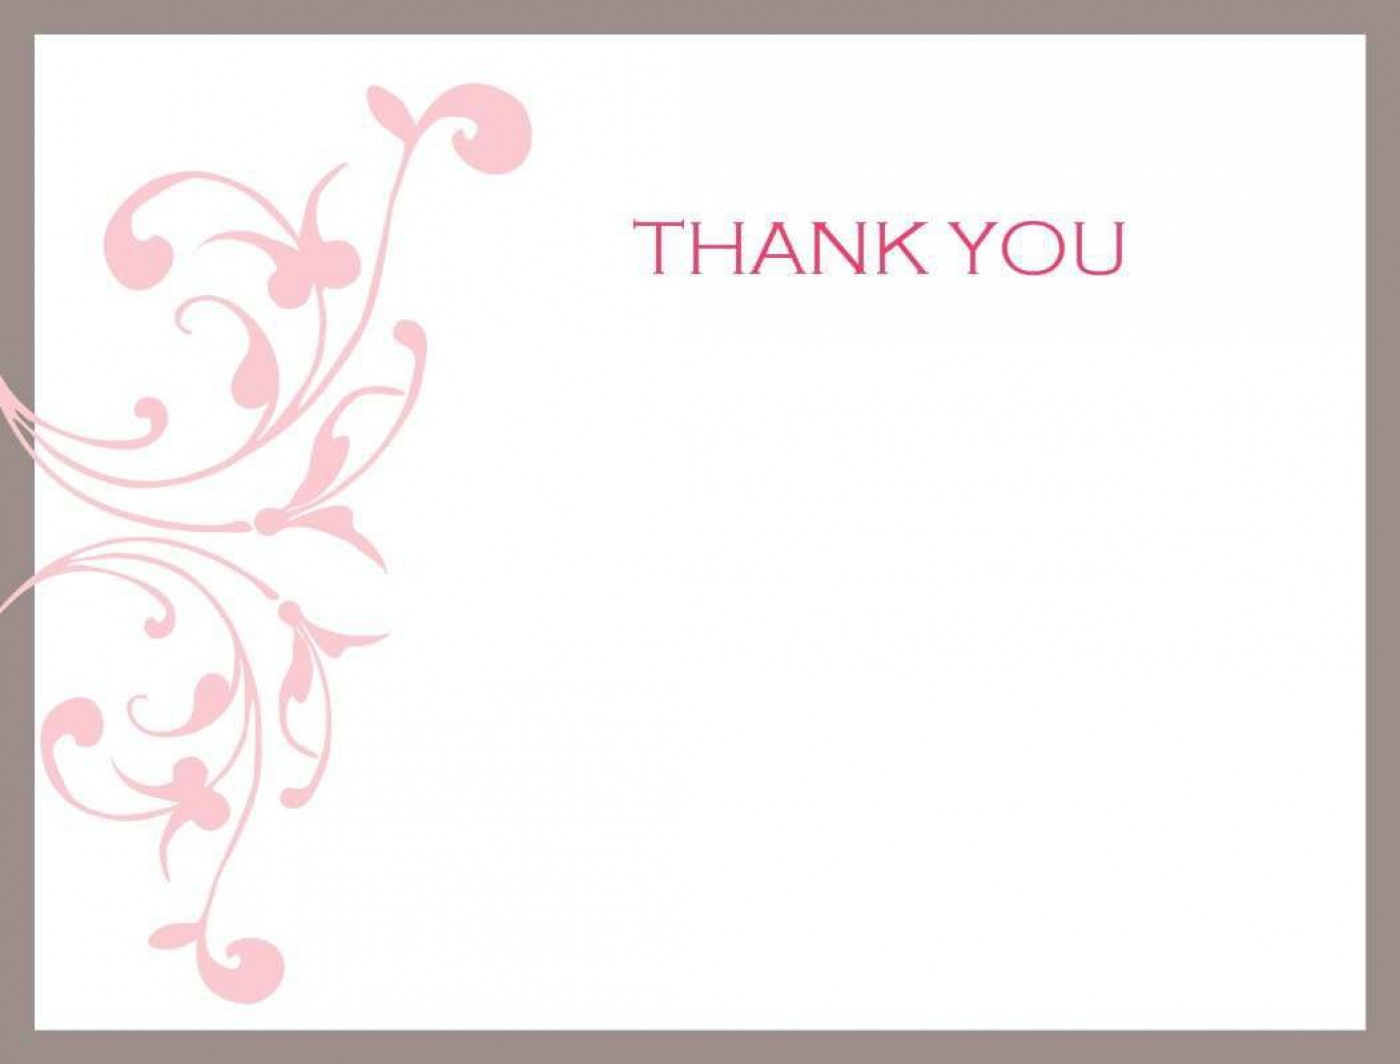 004 Unusual Thank You Note Template Free Printable Concept 1400